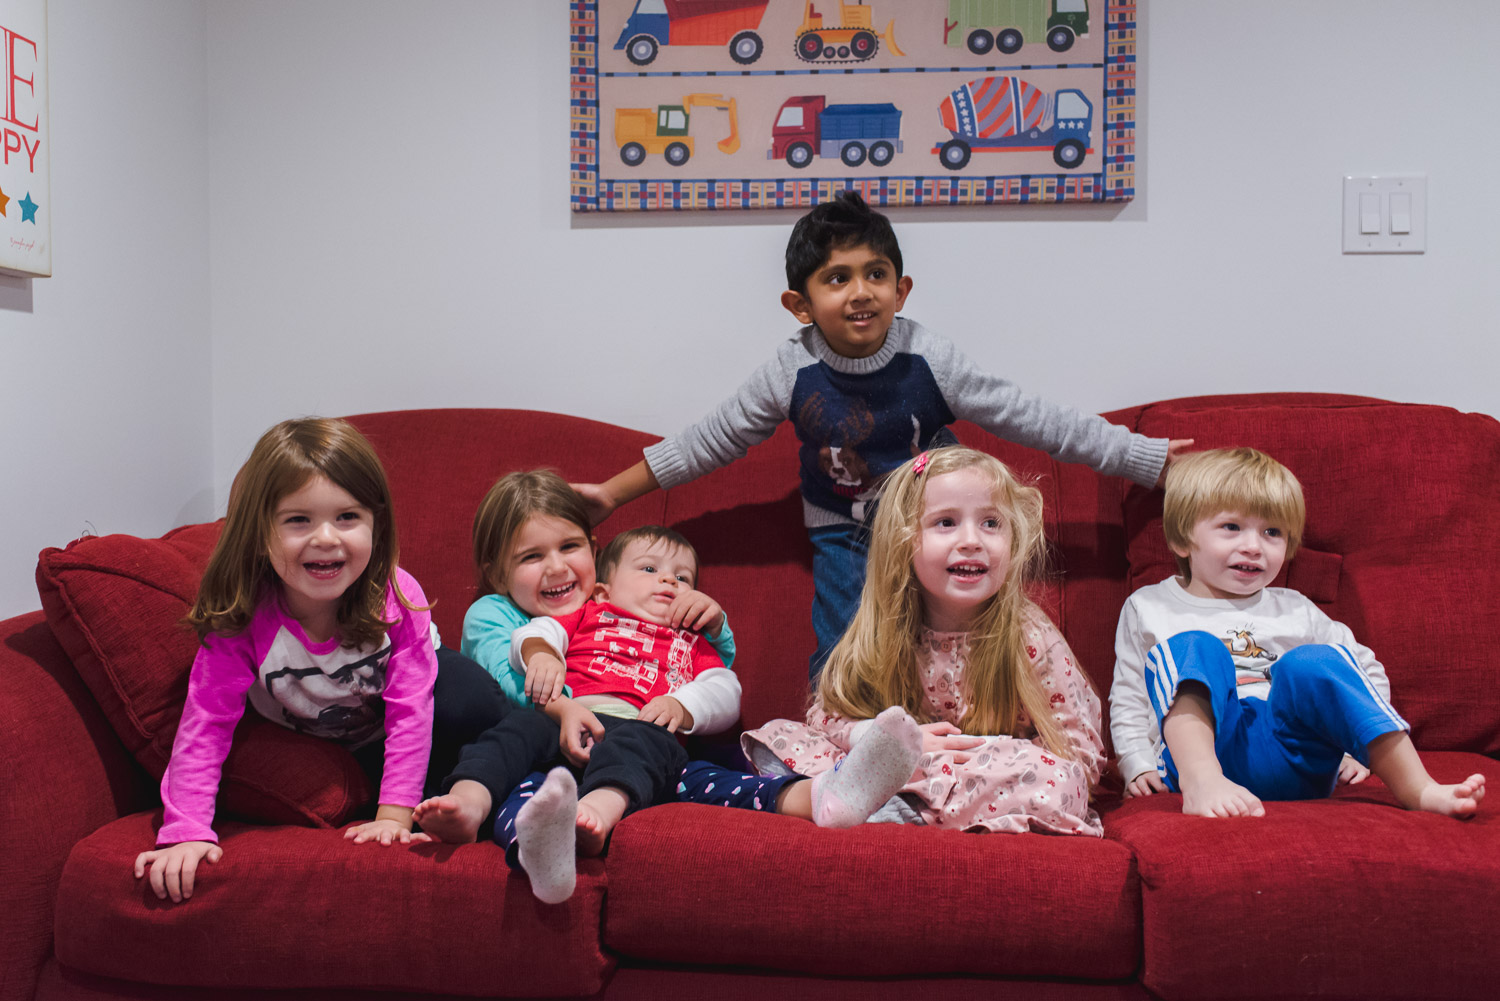 Kids gathered on the couch.